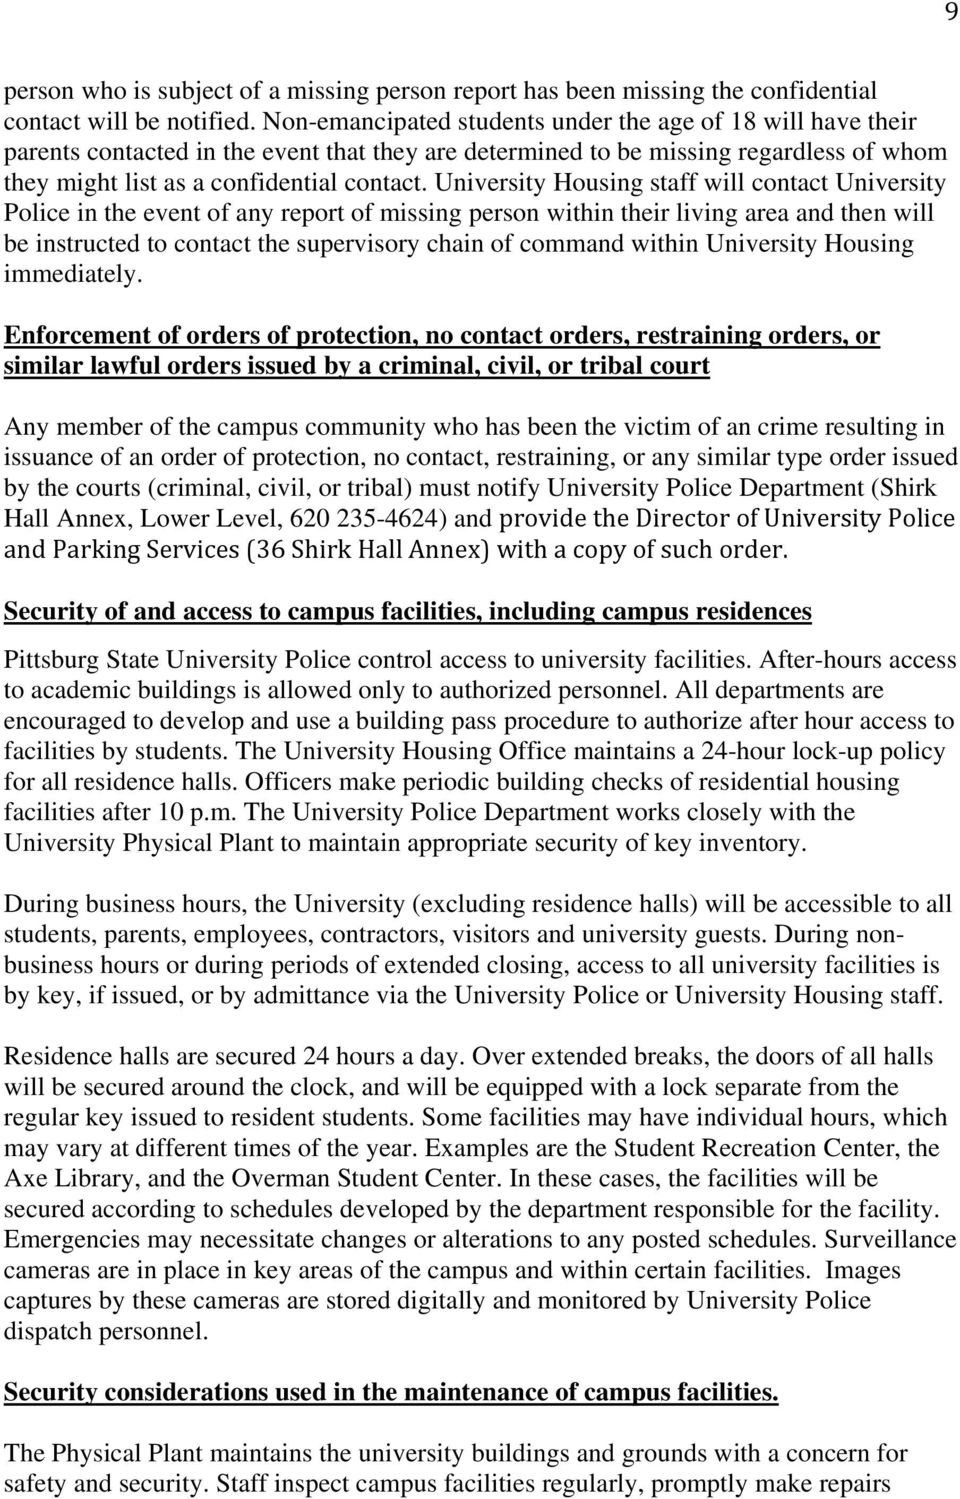 University Housing staff will contact University Police in the event of any report of missing person within their living area and then will be instructed to contact the supervisory chain of command